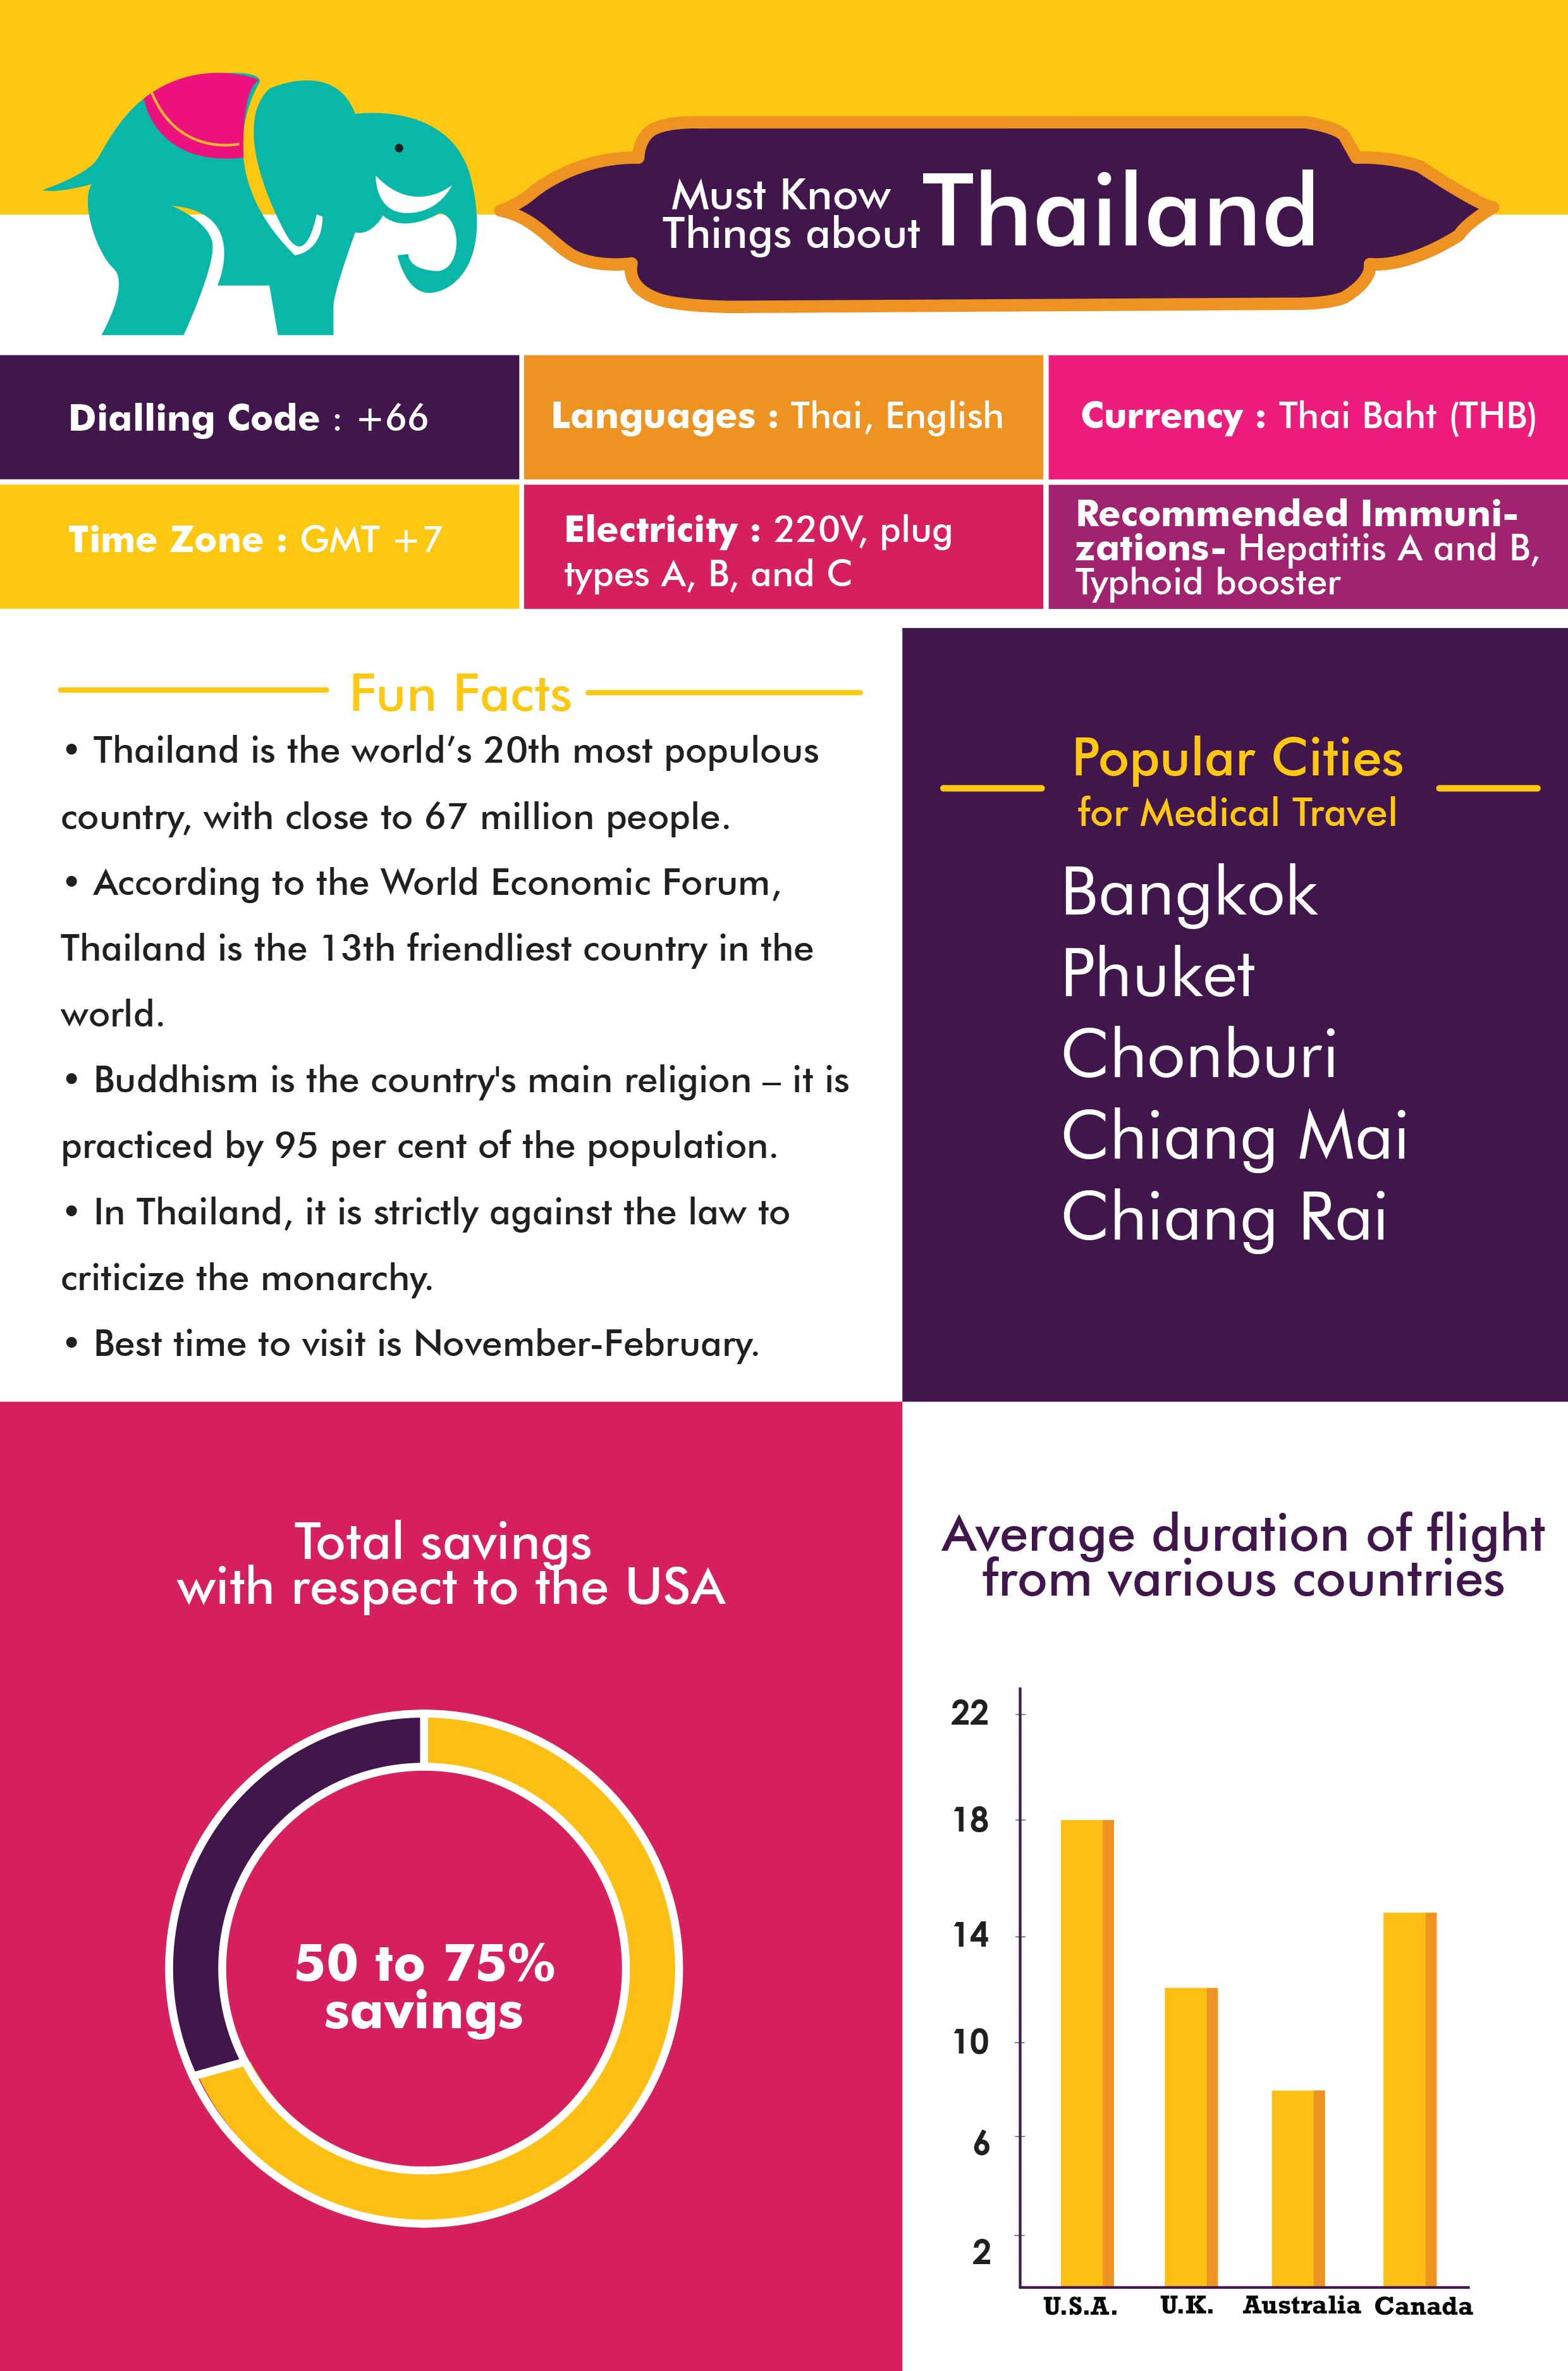 Facts about Medical Tourism in Thailand